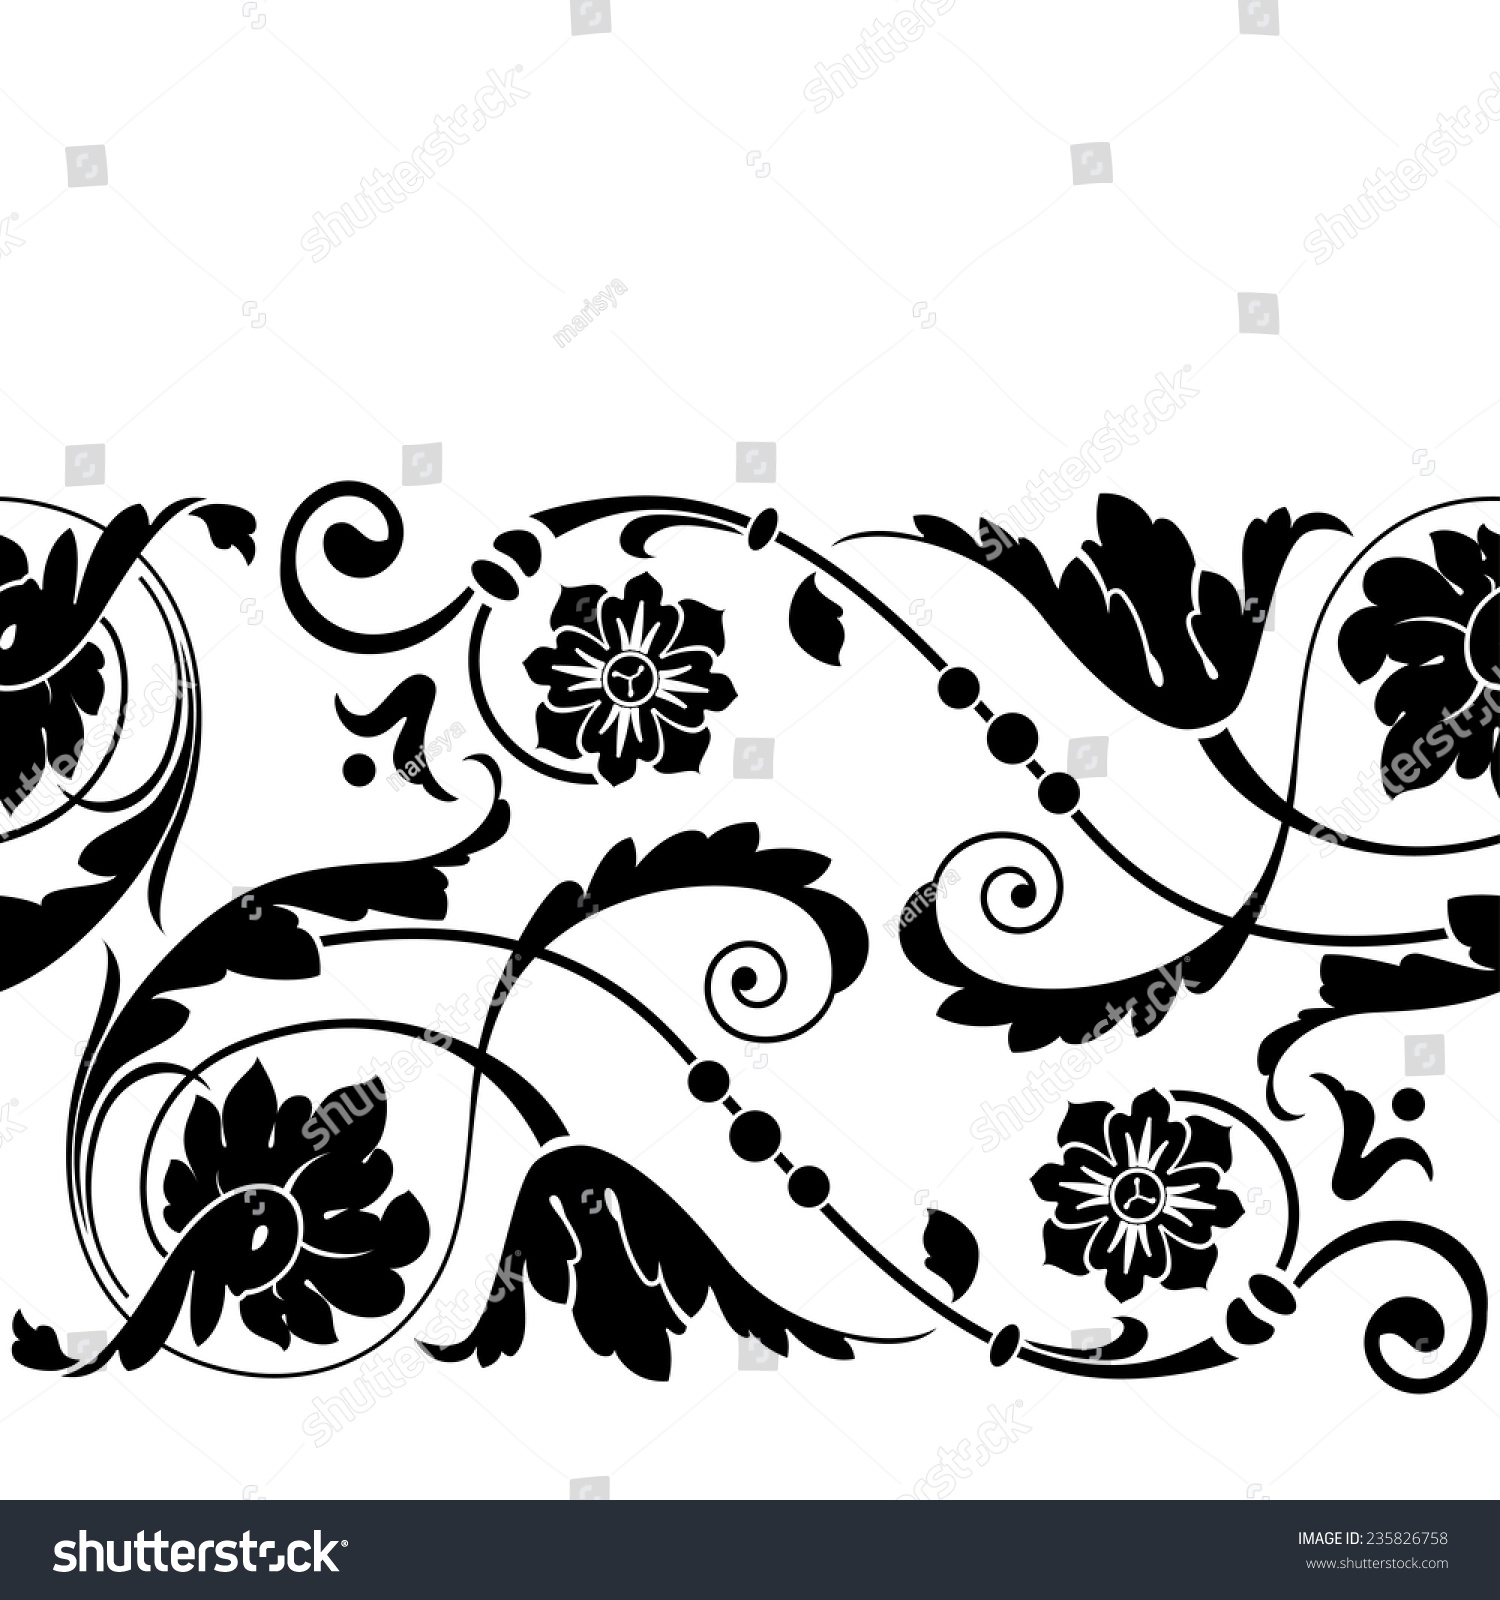 Decorative Black Flower Border Stock Image: Decorative Stylized Border Floral Elements Stock Vector